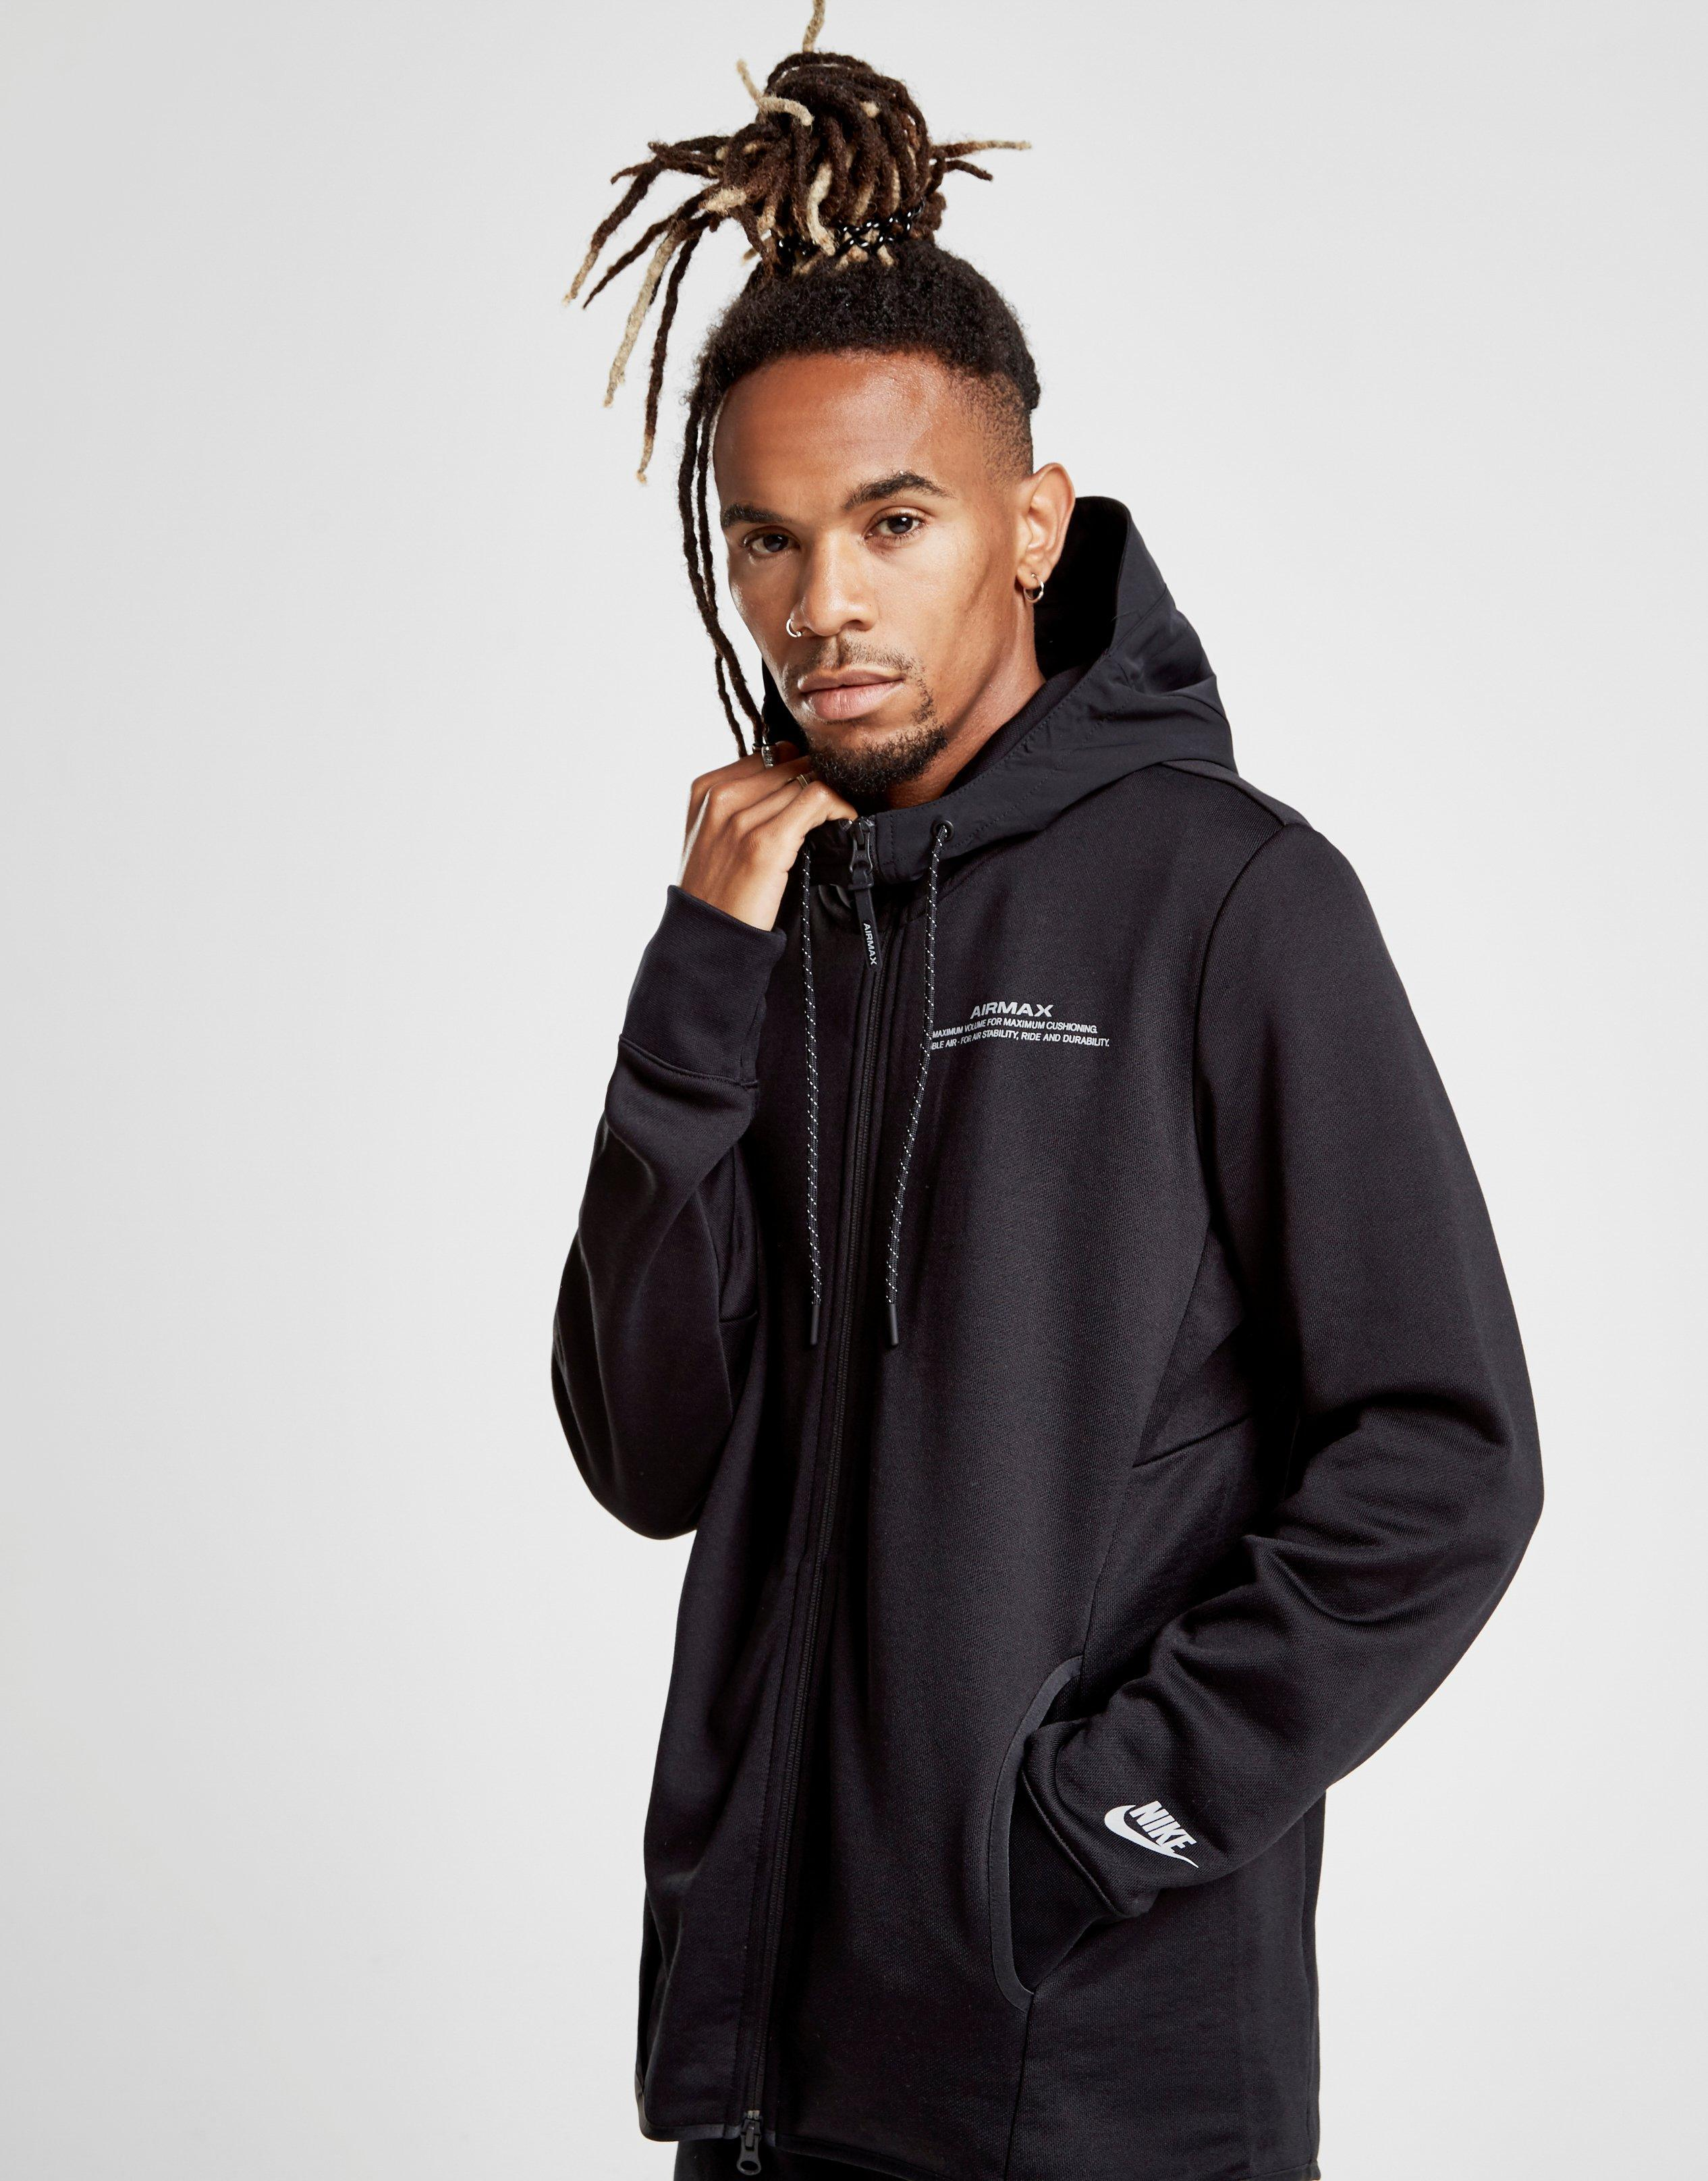 ddcd3f0493d4 Nike Air Max French Terry Hoodie in Black for Men - Lyst